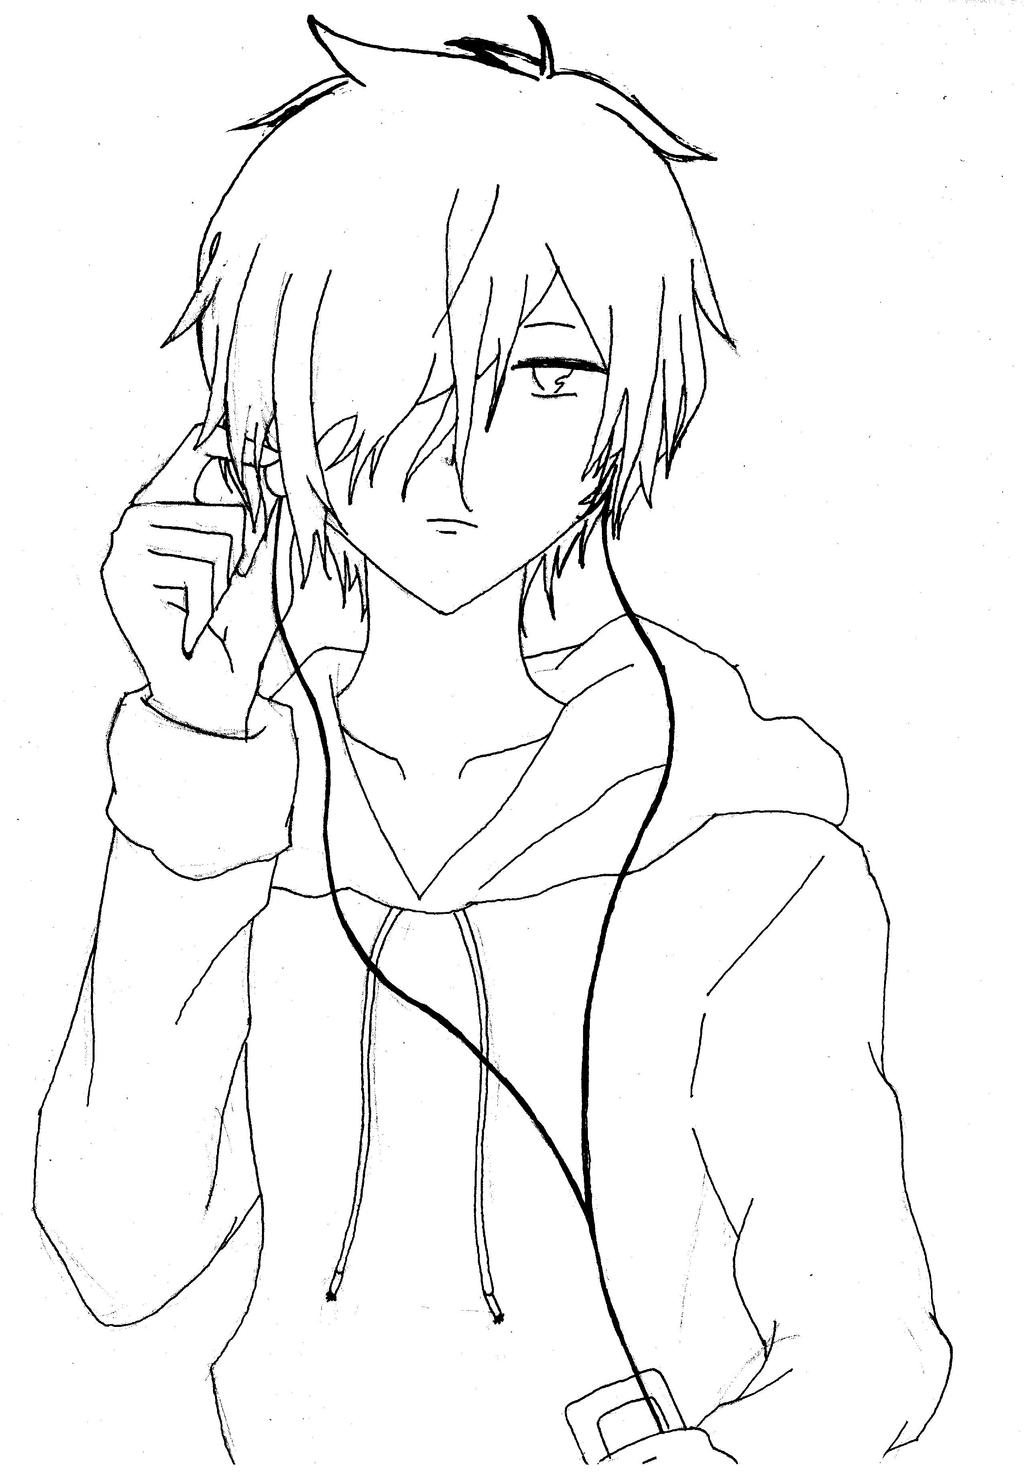 Lineart Anime Boy : Anime manga guy line art by gijoerenegades on deviantart